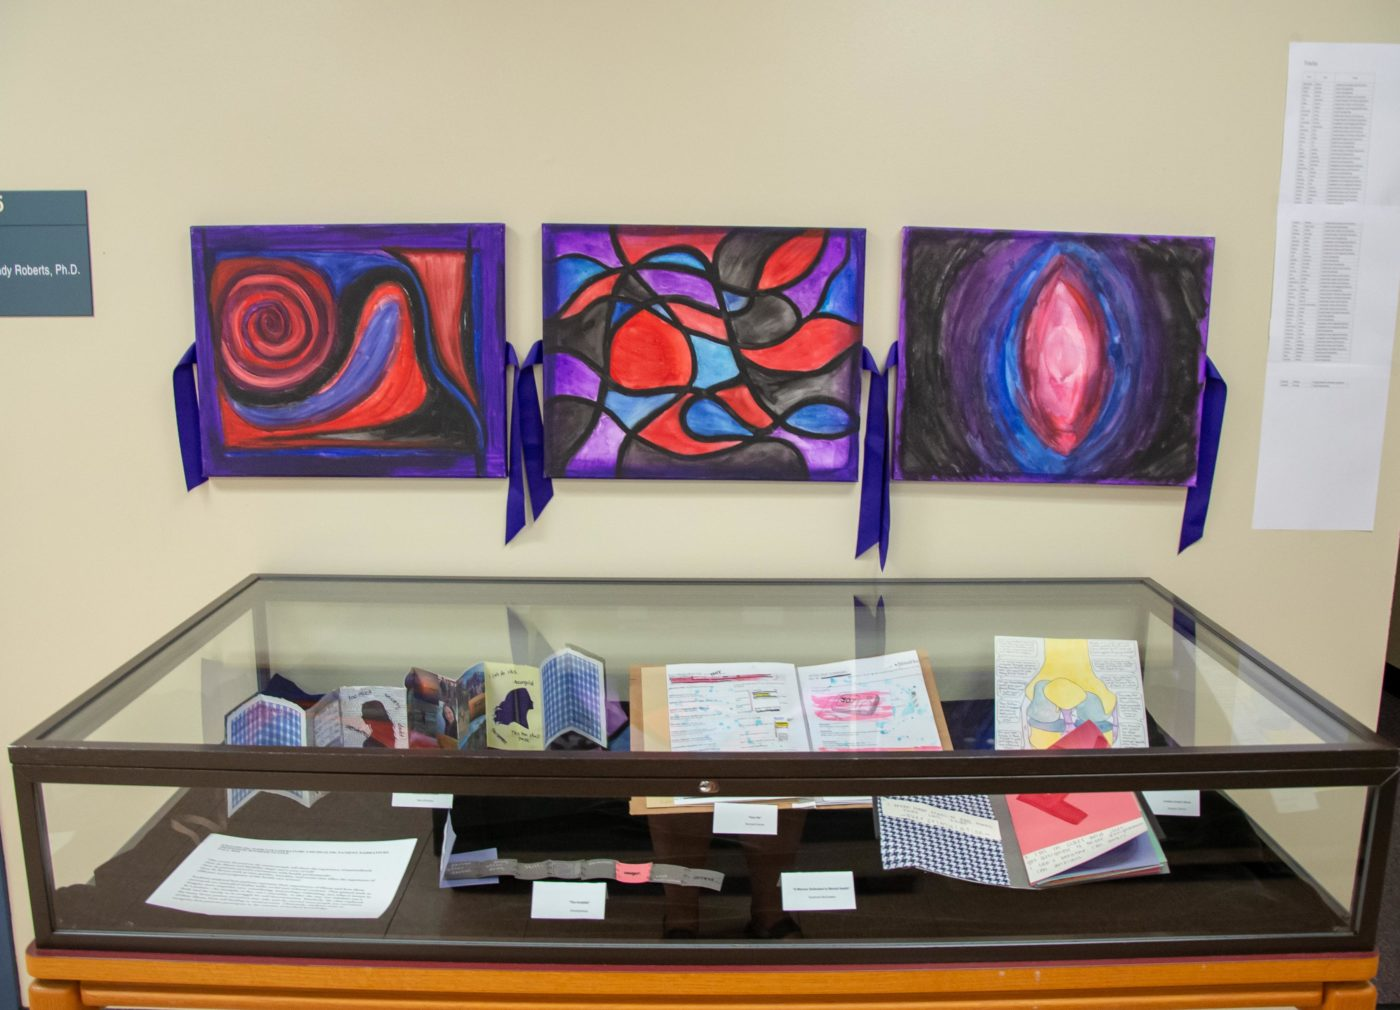 exhibit wall featuring colorful artwork in swirling abstract shapes above exhibit case with open art books displayed.